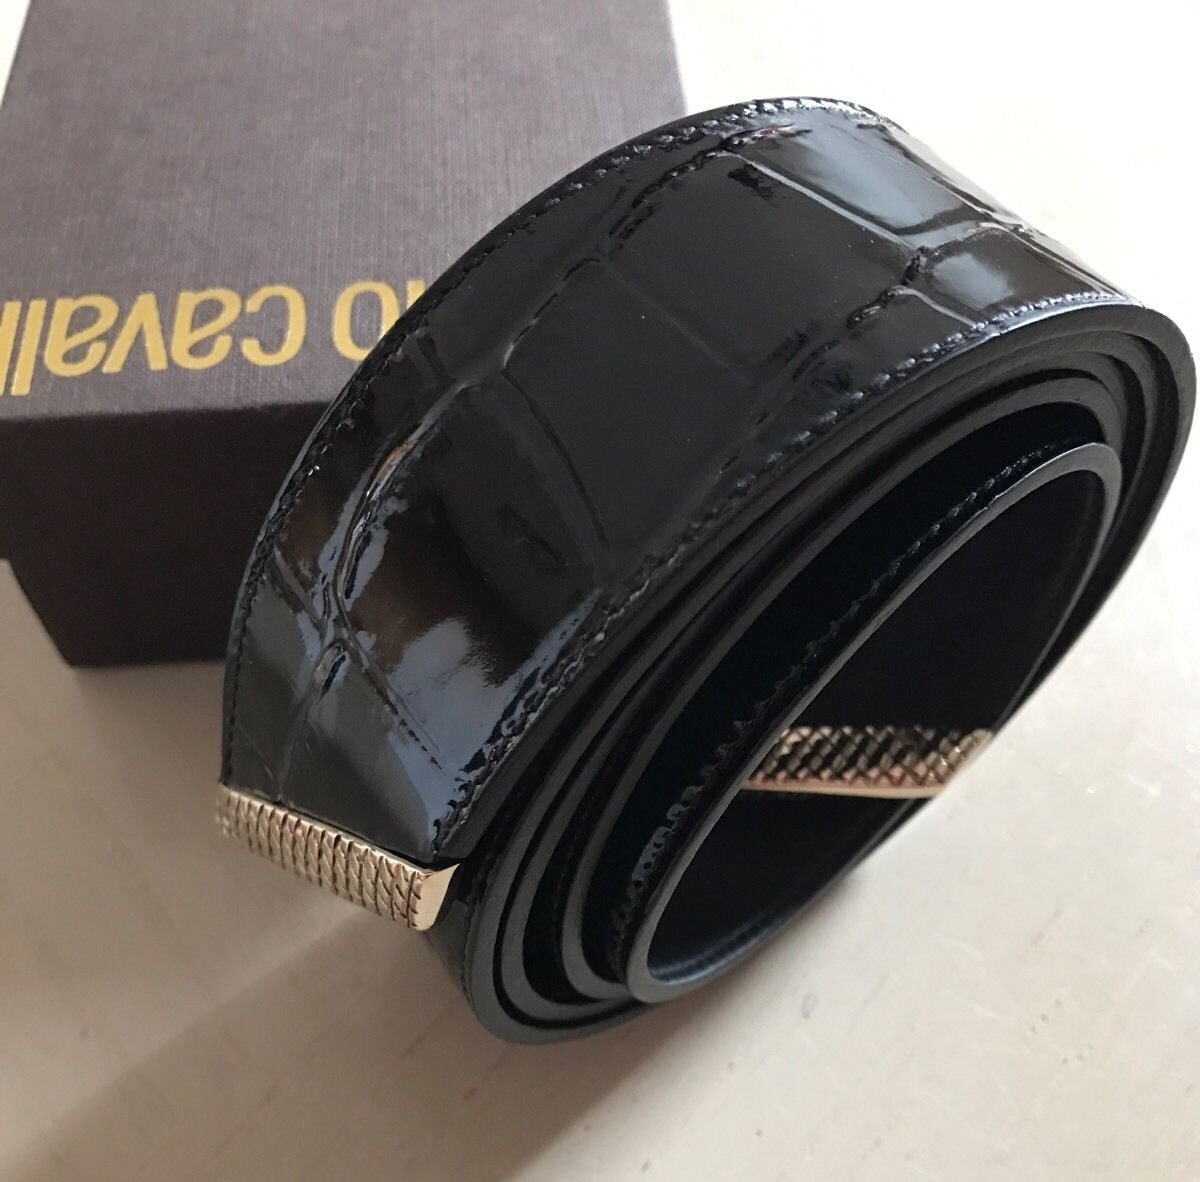 New $590 Roberto Cavalli Leather Women's Belt Size 42/75 Black Italy - BAYSUPERSTORE